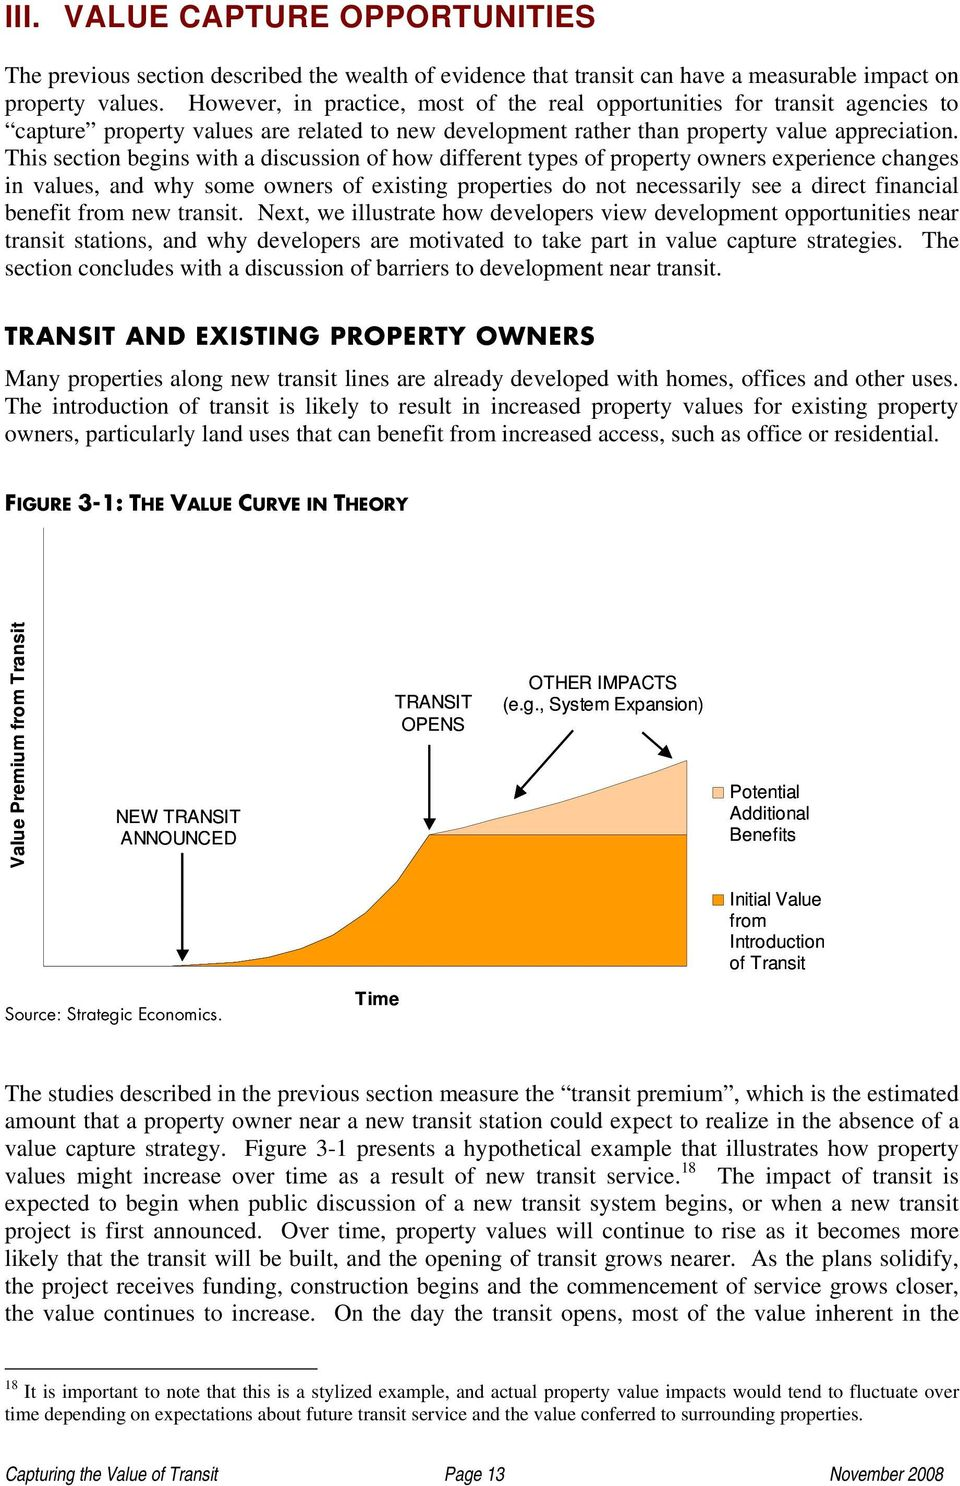 This section begins with a discussion of how different types of property owners experience changes in values, and why some owners of existing properties do not necessarily see a direct financial